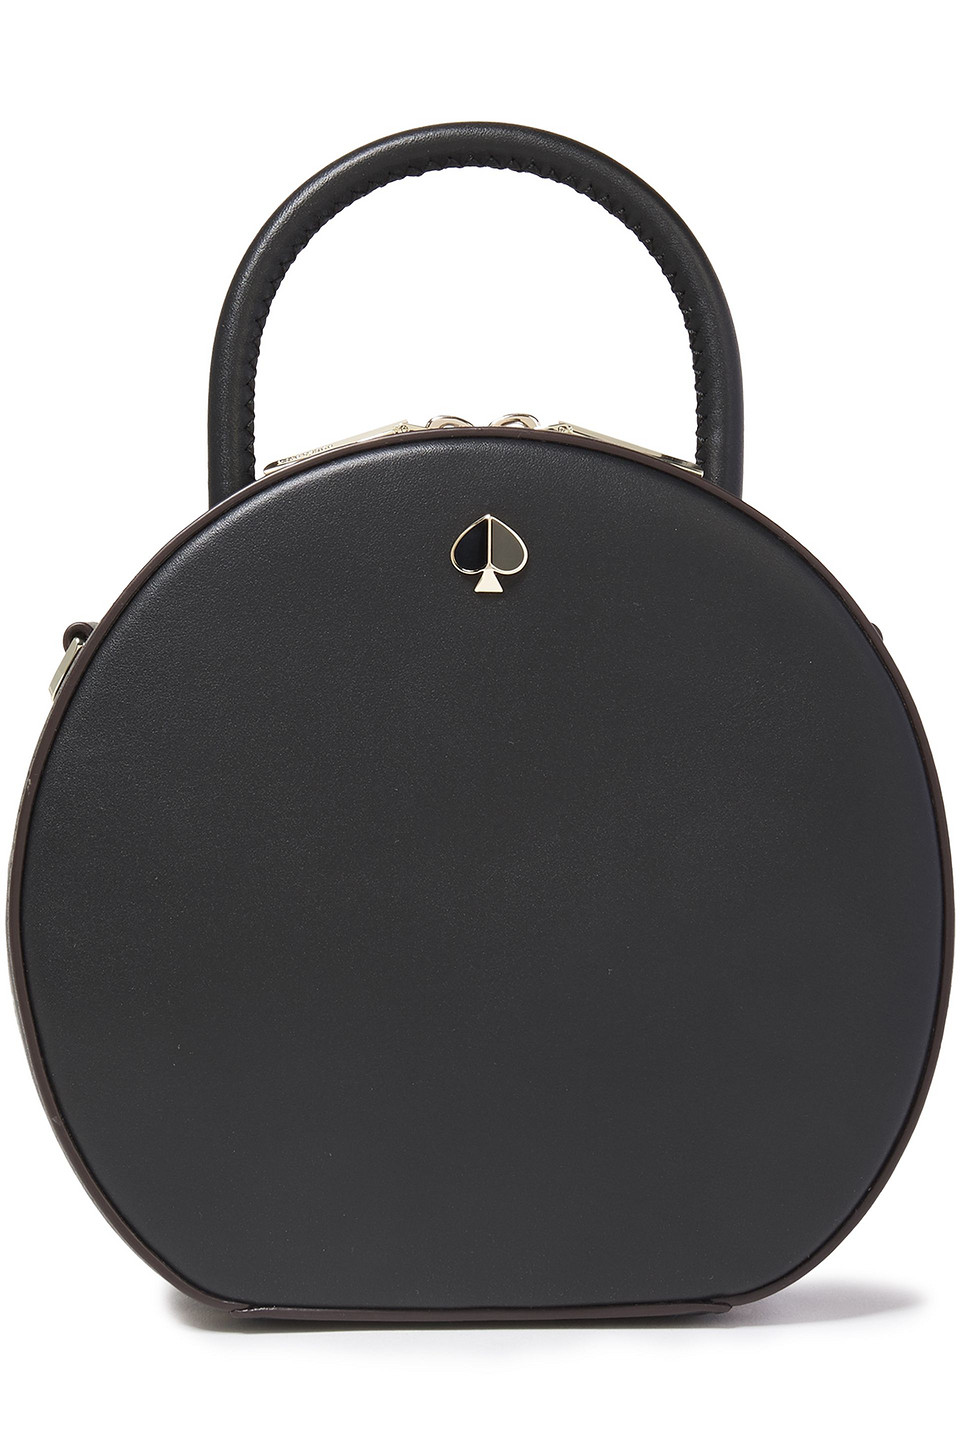 KATE SPADE | Kate Spade New York Woman Andi Canteen Leather Shoulder Bag Black | Clouty